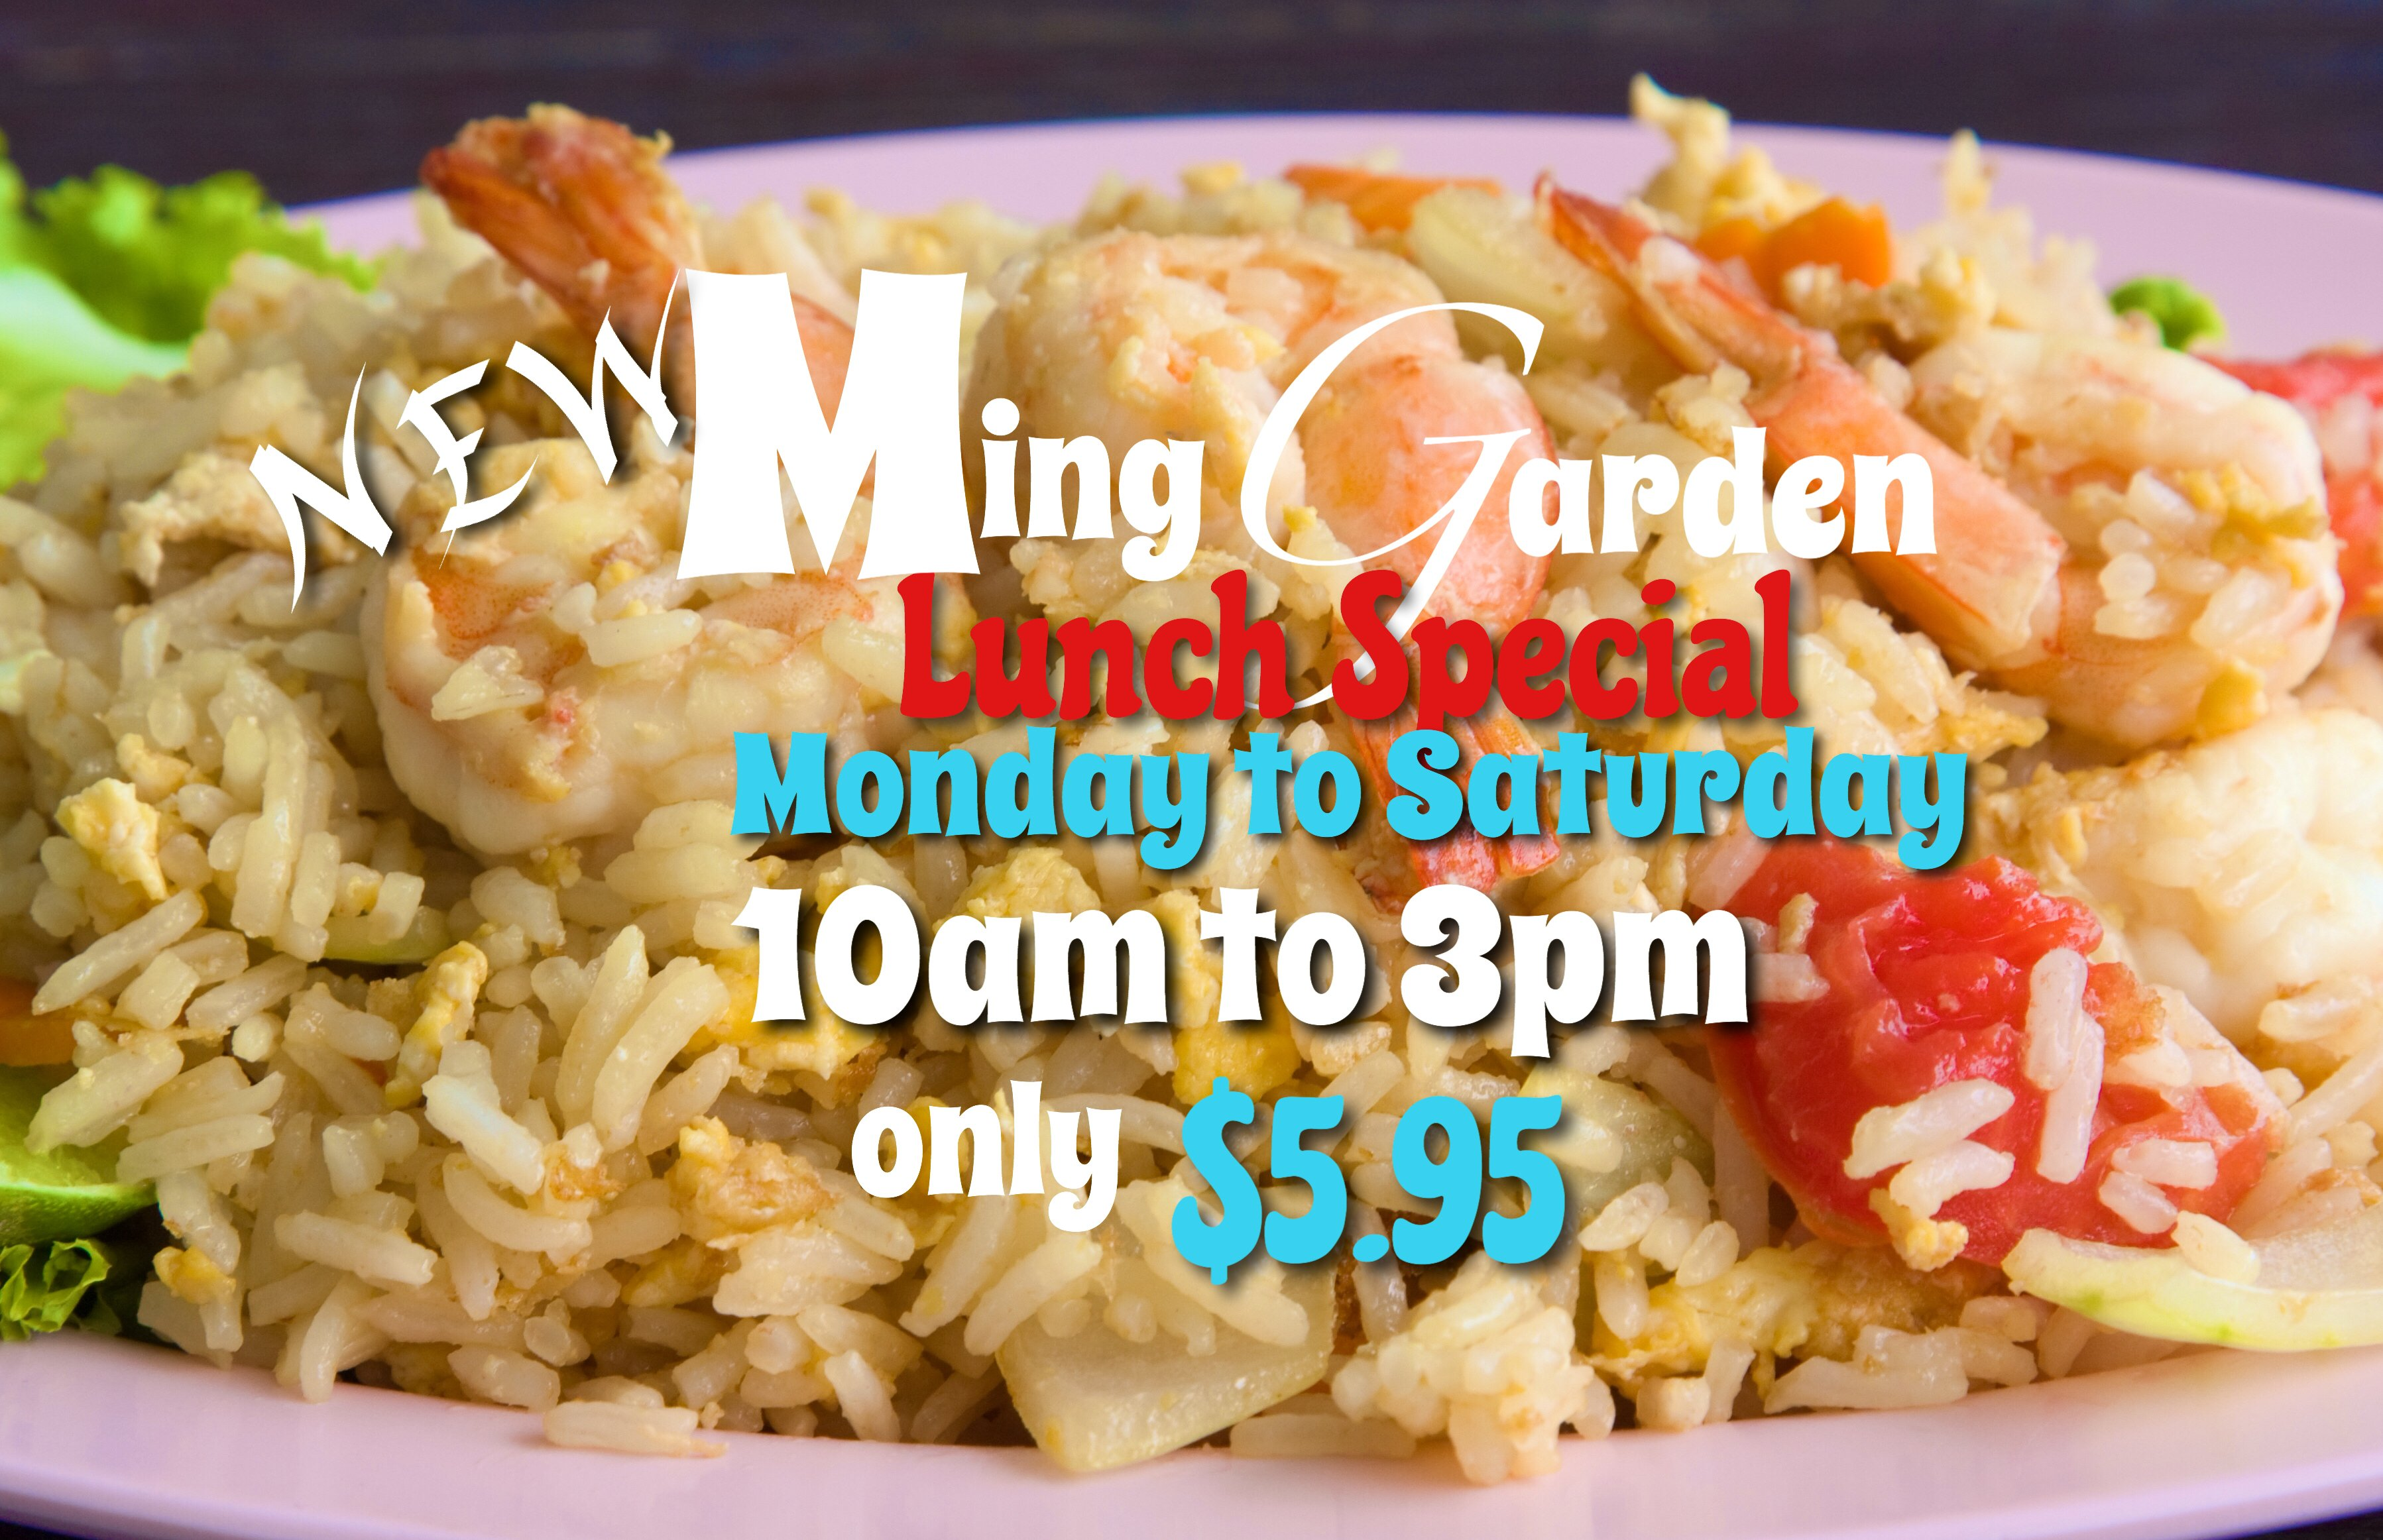 From togo Menu Lunch Special $5.95 Monday to Saturday from 10am - 3pm ...